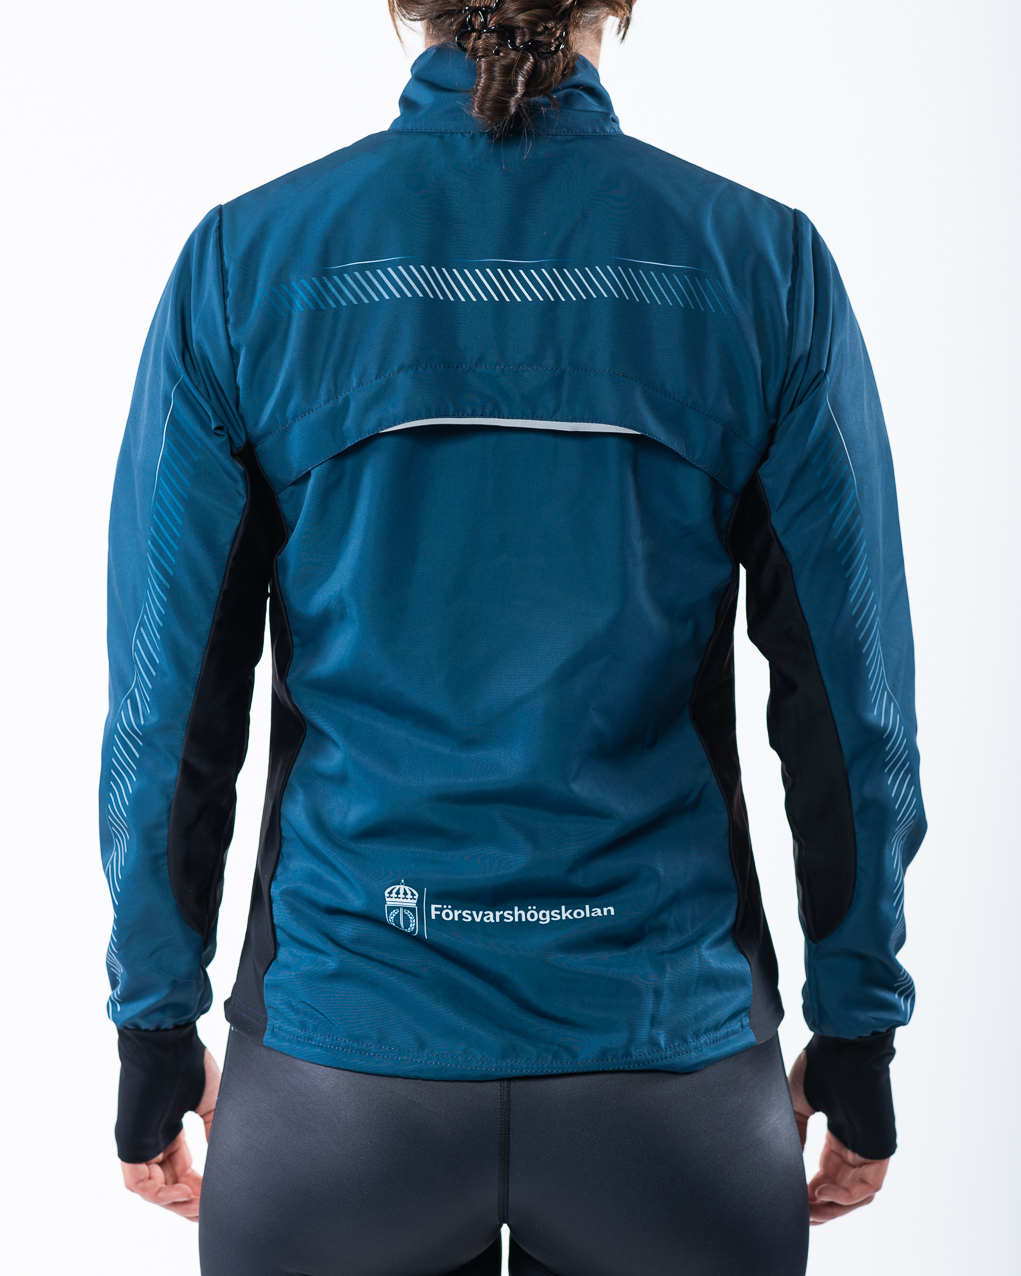 Women's running jacket back